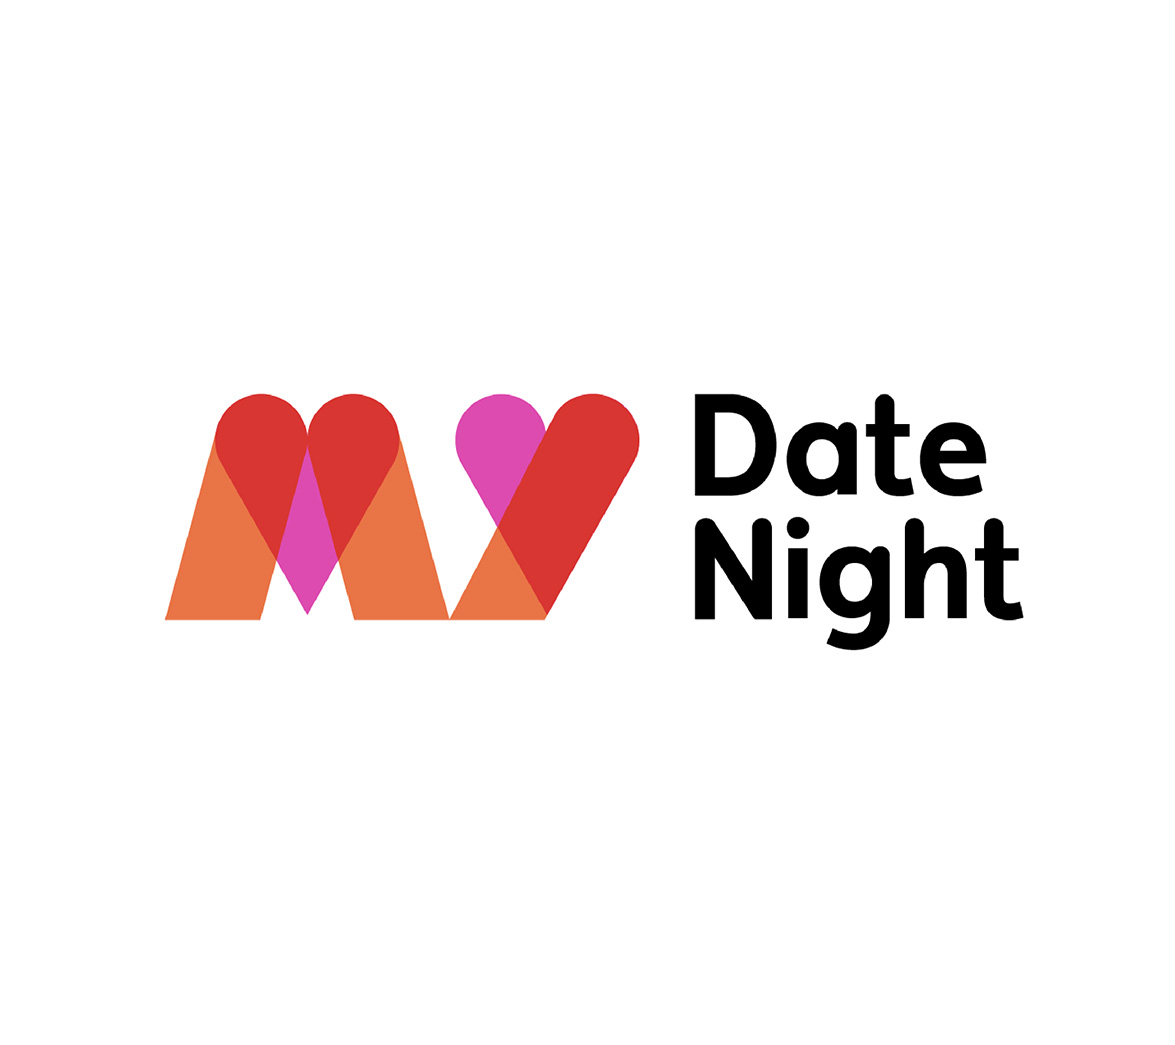 Logo for new startup brand My Date Night, designed by White Bear Studio